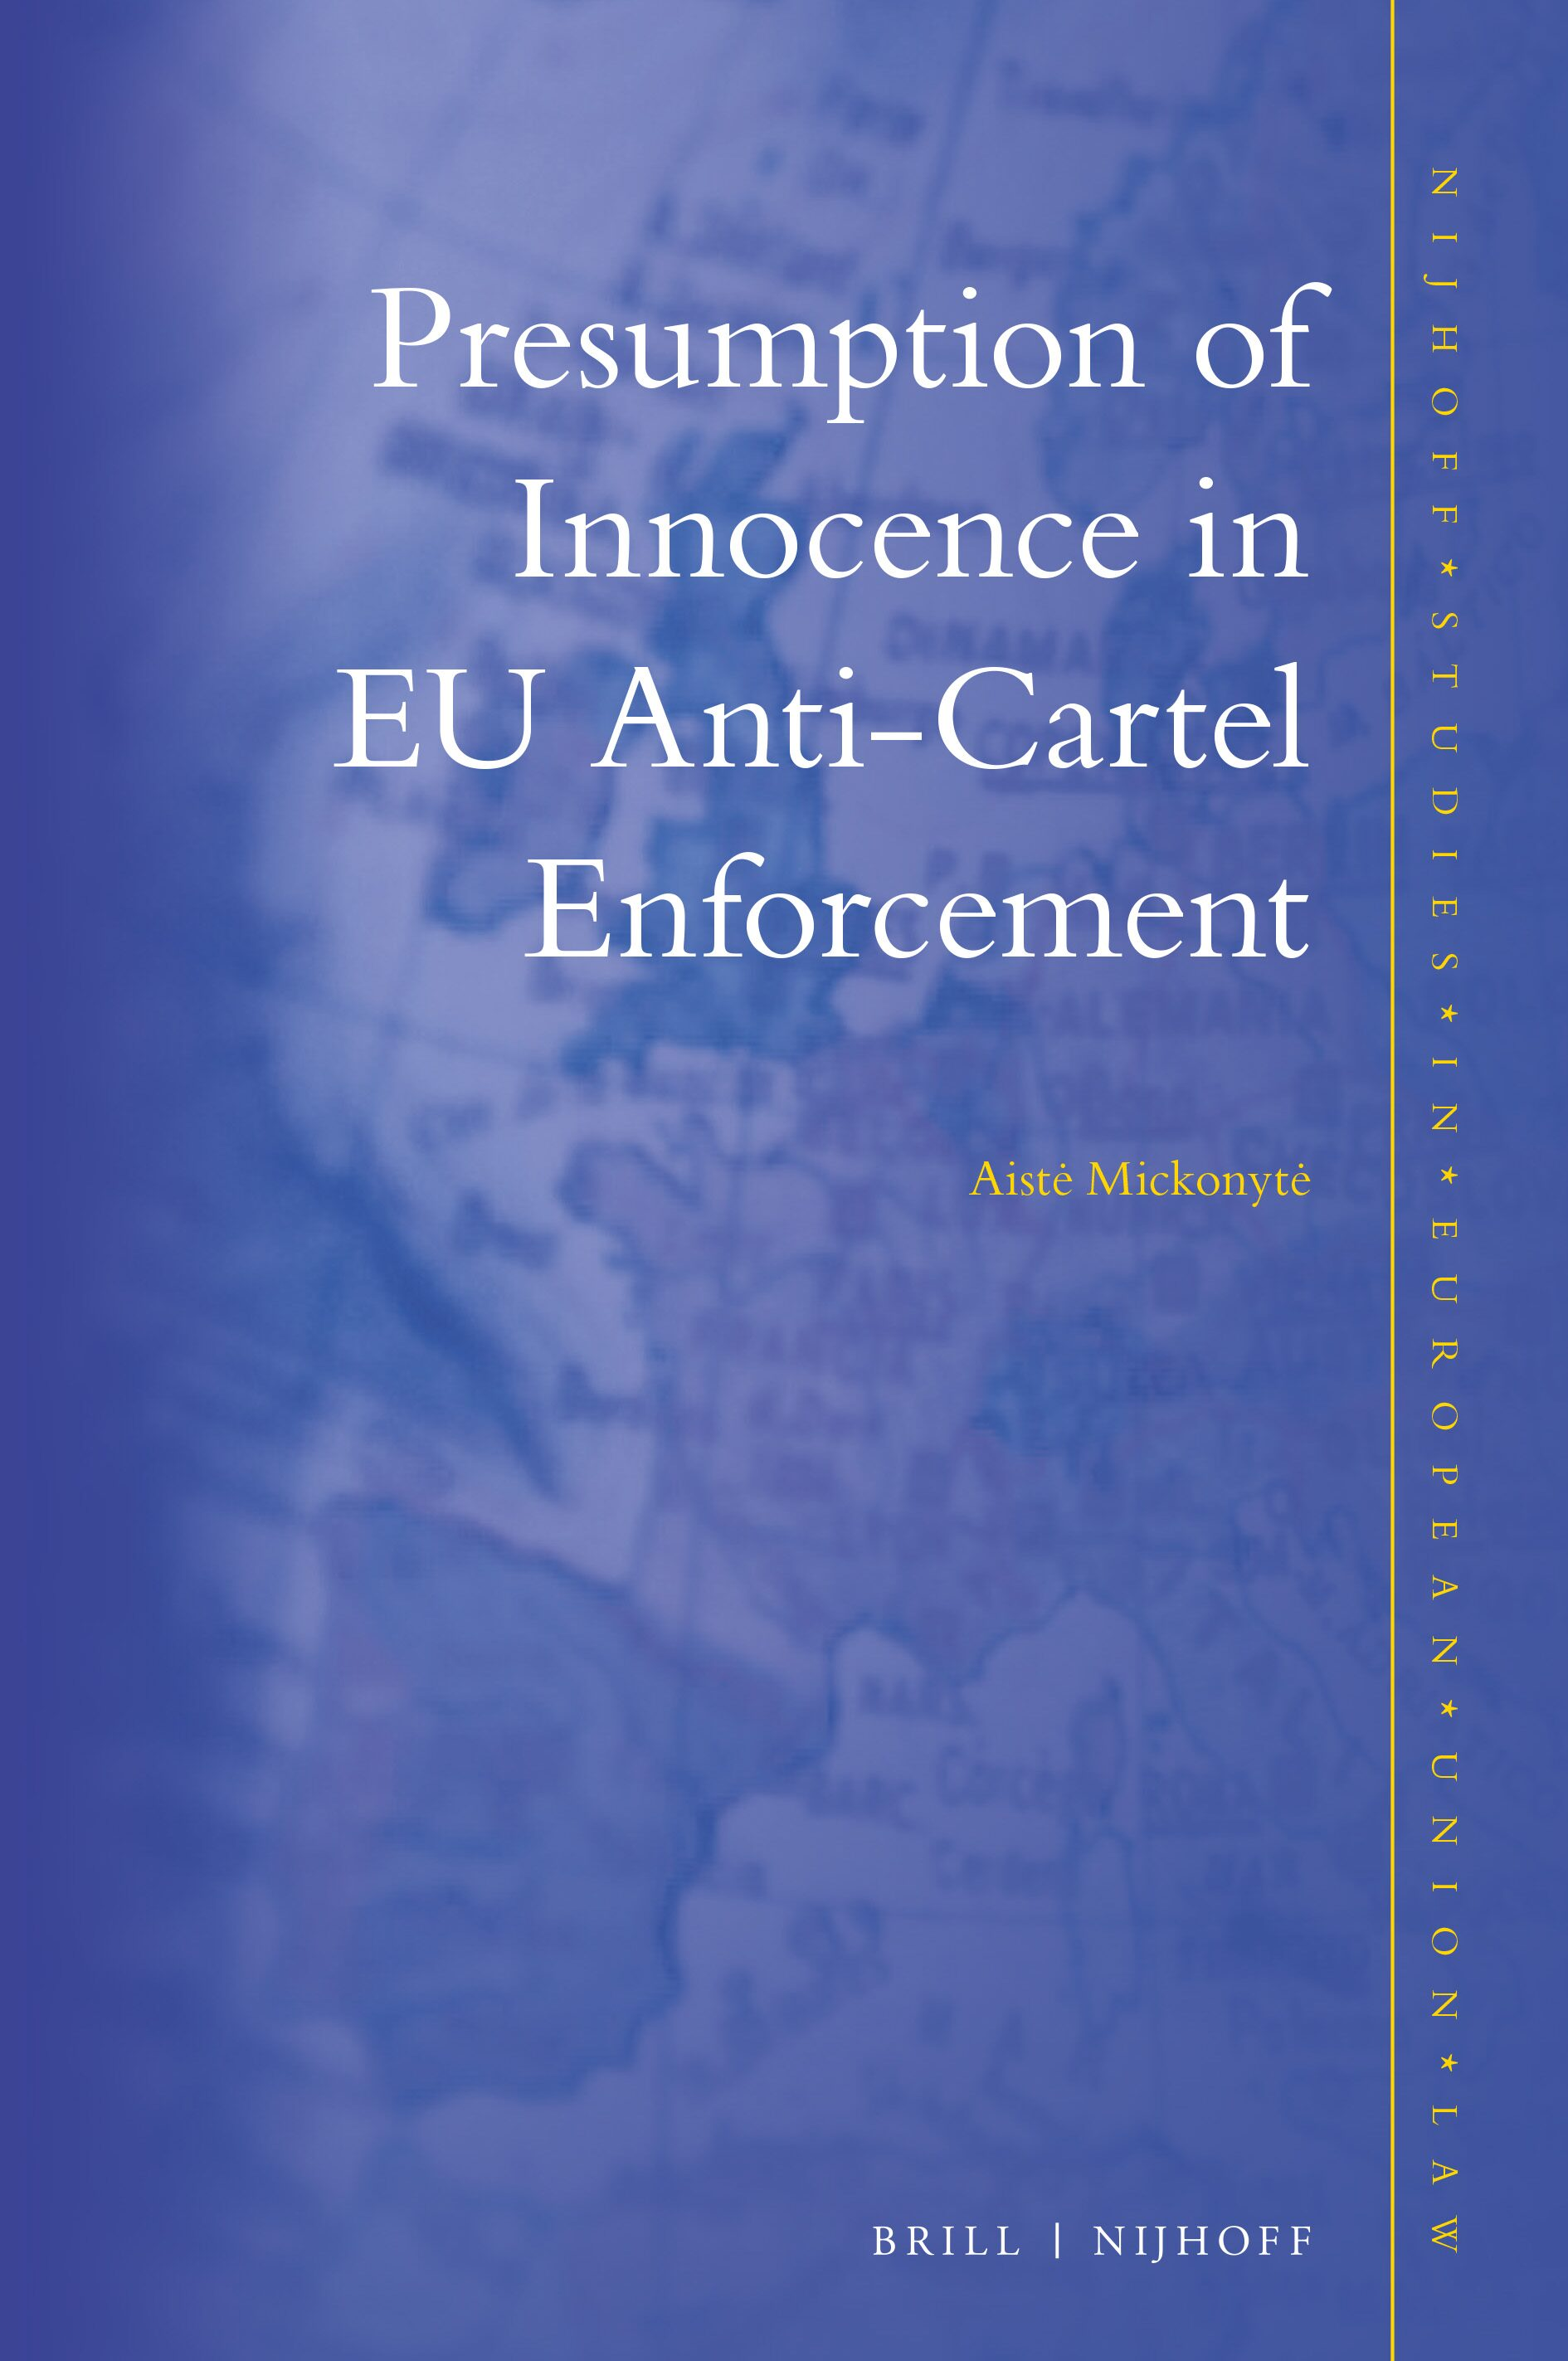 Chapter 20 Conclusions in Presumption of Innocence in EU Anti ...